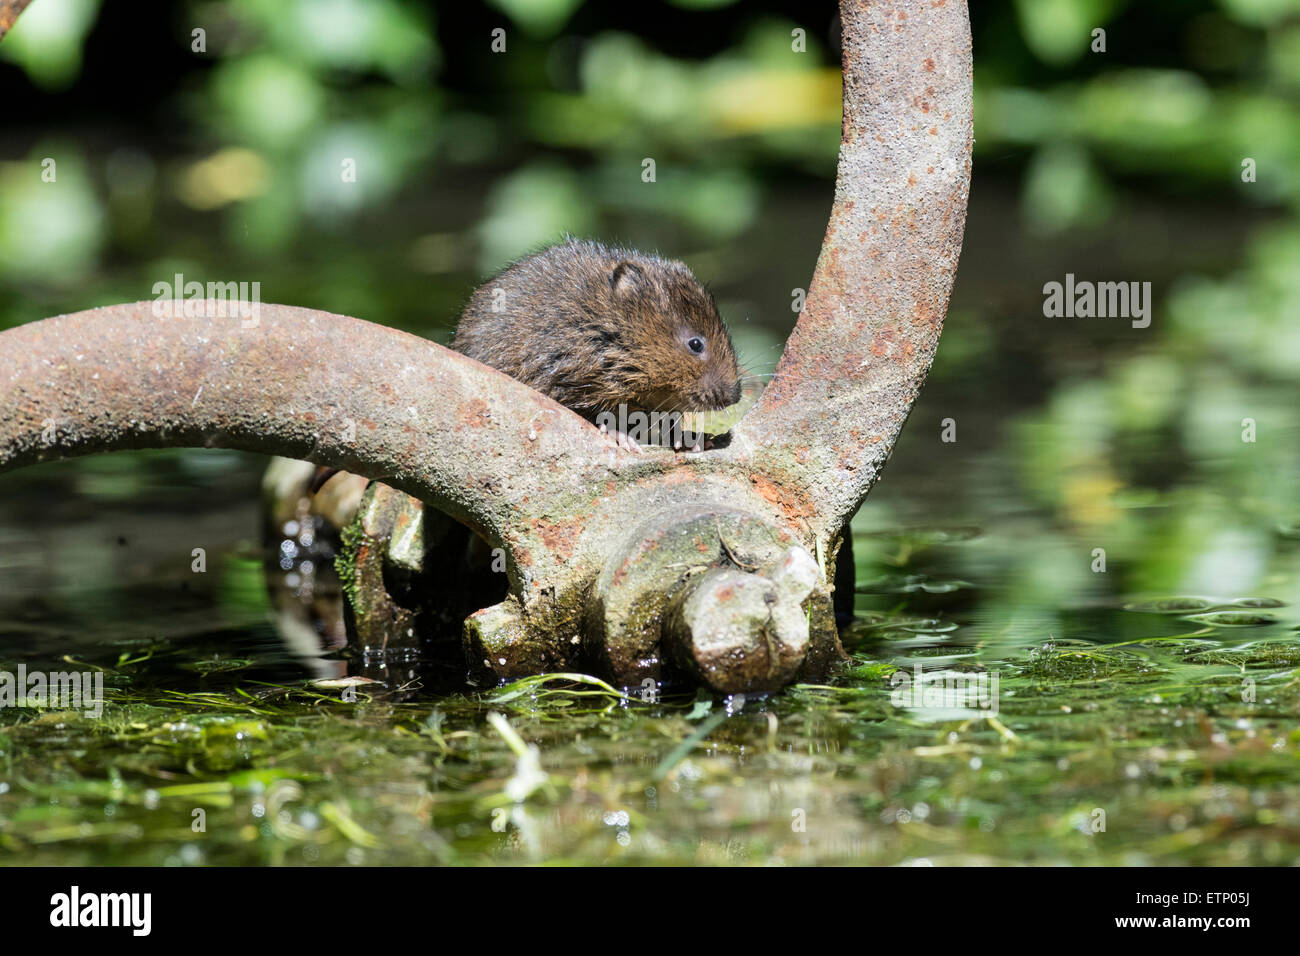 Water vole (Arvicola terrestris) exploring an old pump-house wheel dumped in mid-stream. - Stock Image